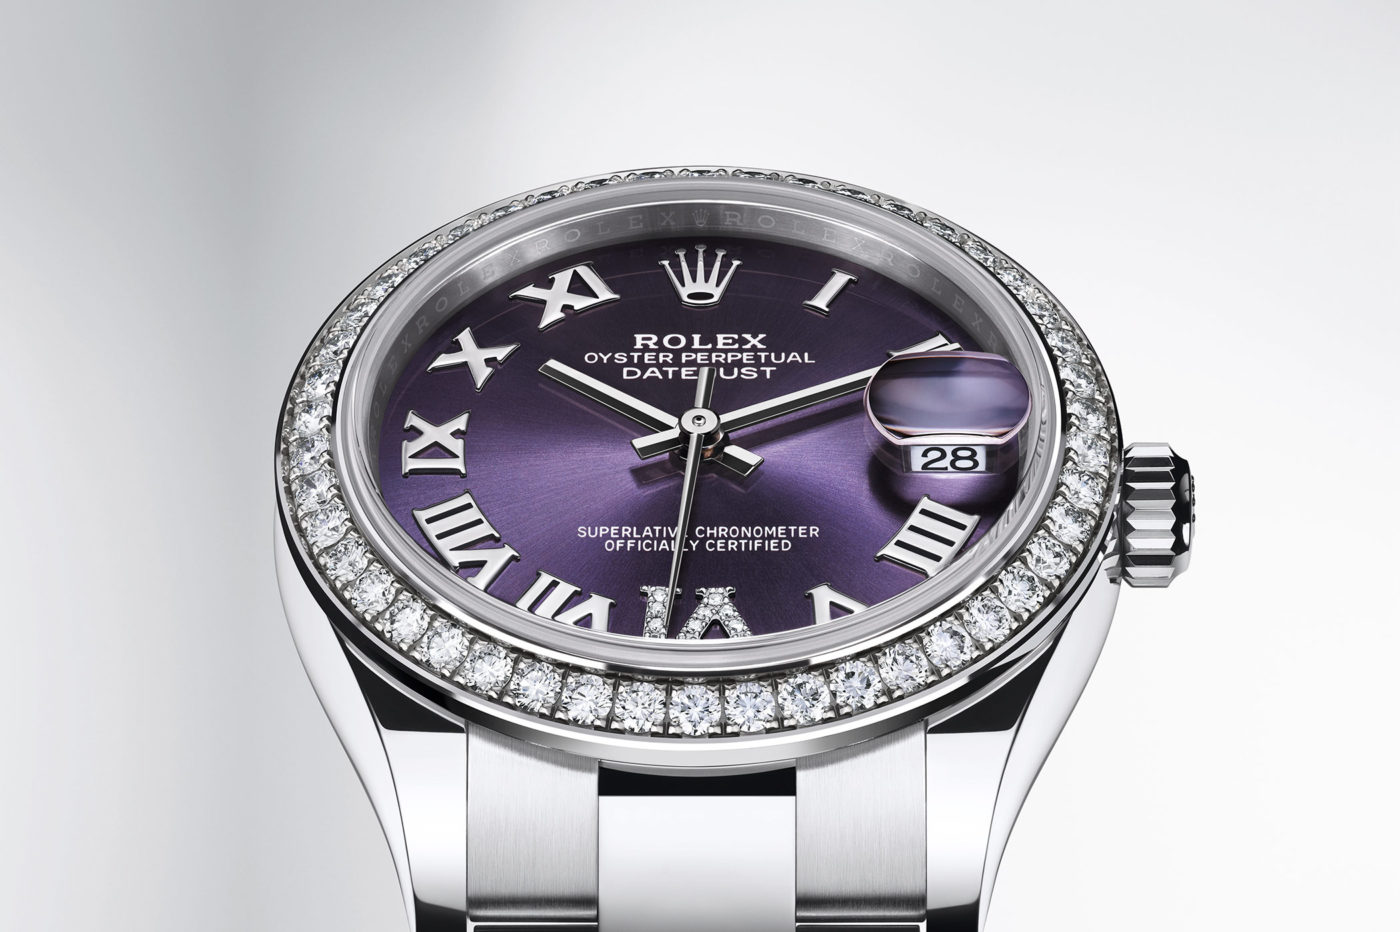 Rolex Oyster Perpetual Datejust 31 [cena]